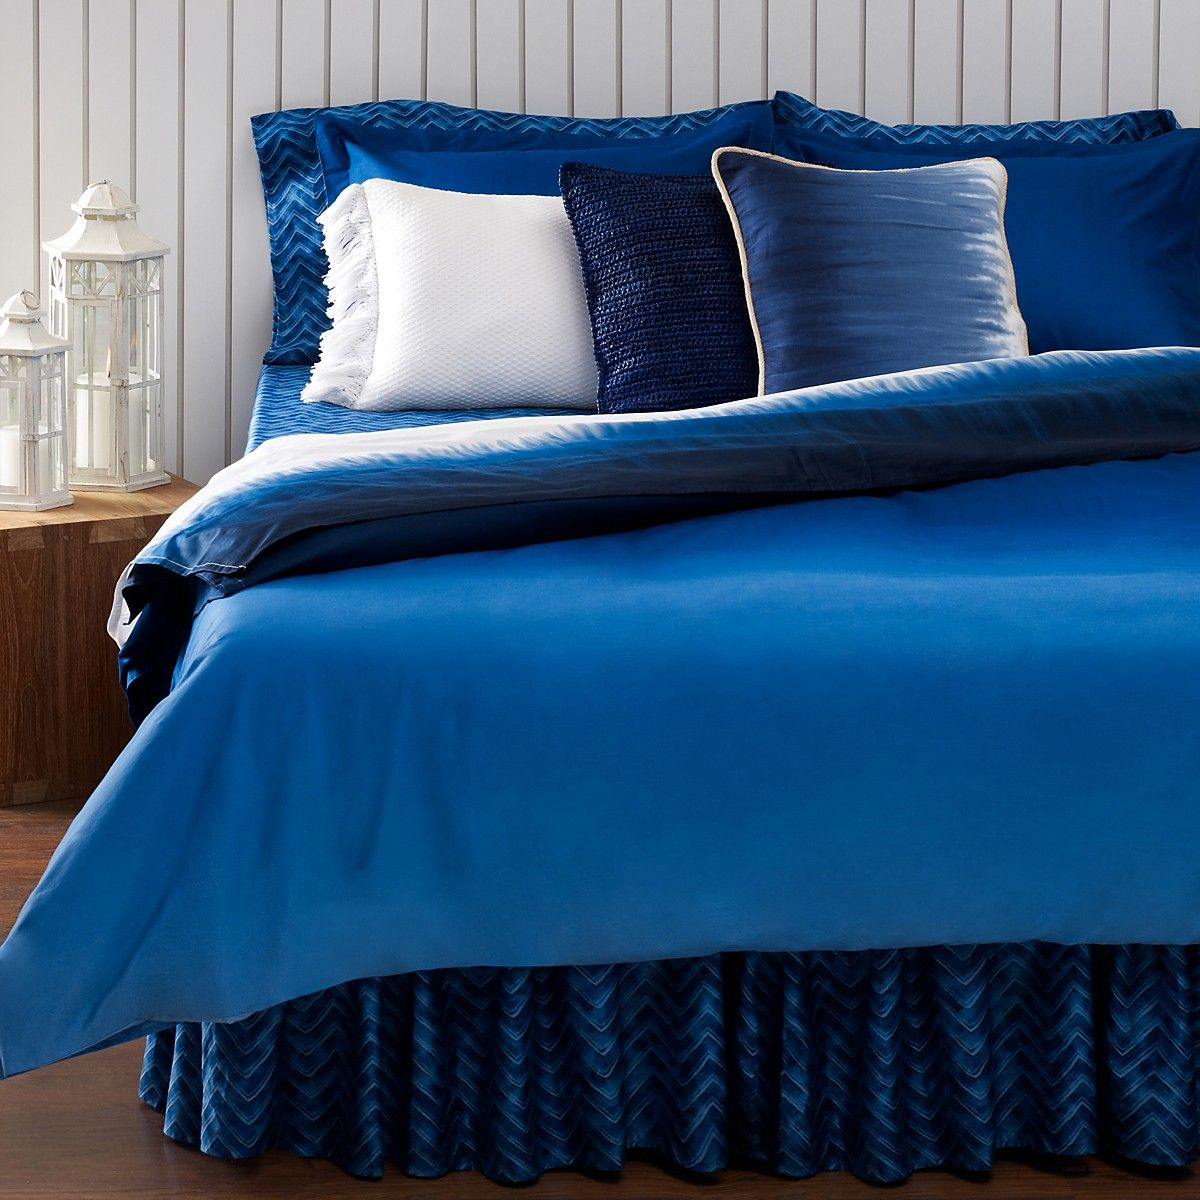 beautiful area ideas top luxury brands decorative century transitional crate mid sets abstract design modern comforters vanity for bloomingdales flooring pillows cozy covers cool king size duvet and rug plus nice comforter bed wood linen barrel lowes tufted armchairs bedroom with